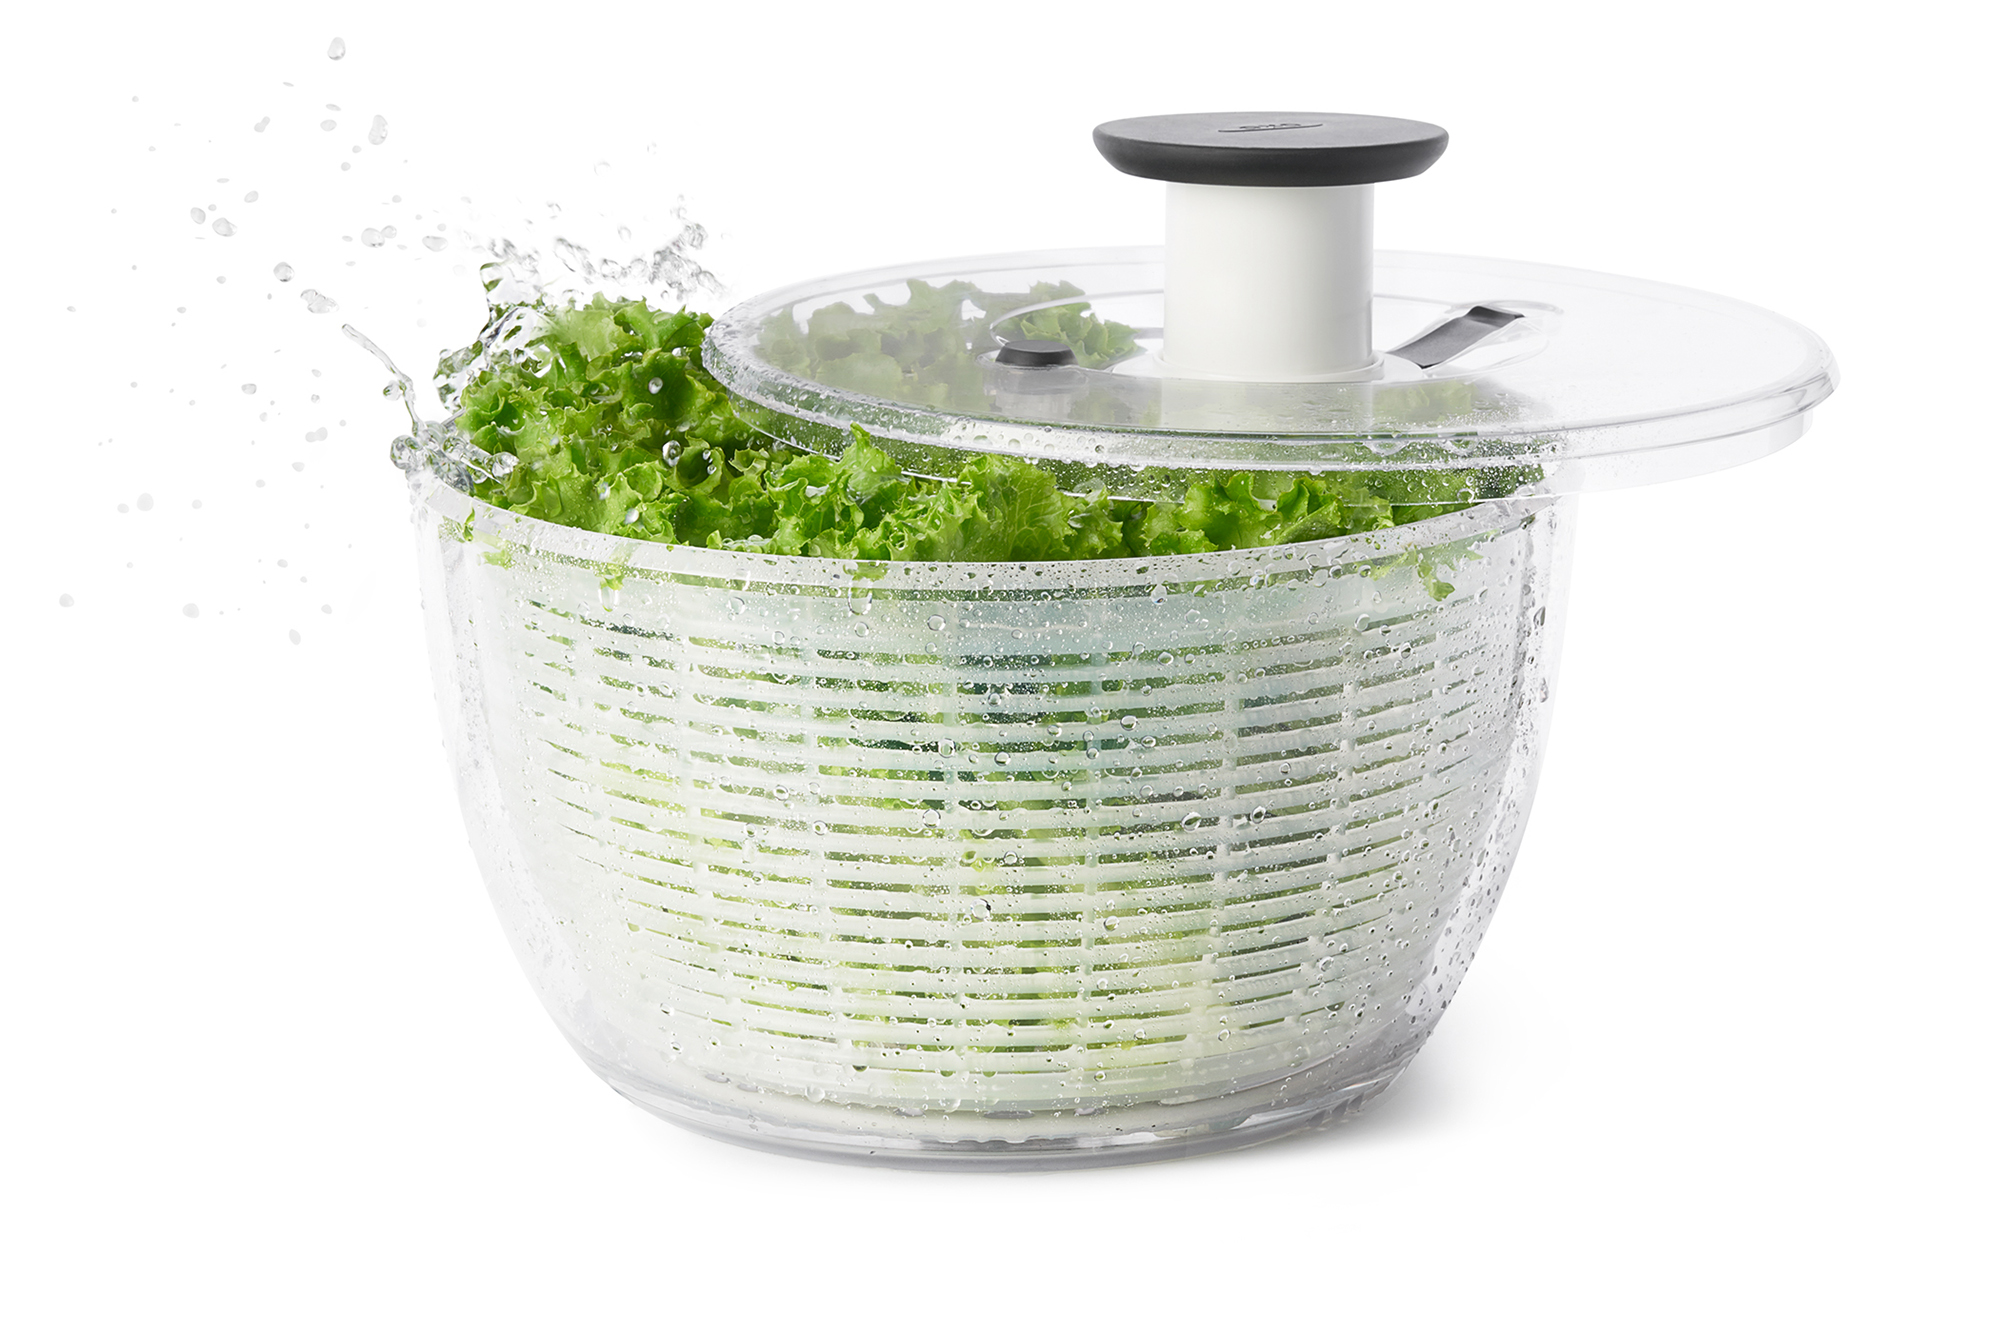 F:PHOTOReady RoomActionsInsert Request48077#OXO32480_OXO Good Grips Salad Spinner 4.0 - Spinning.jpg